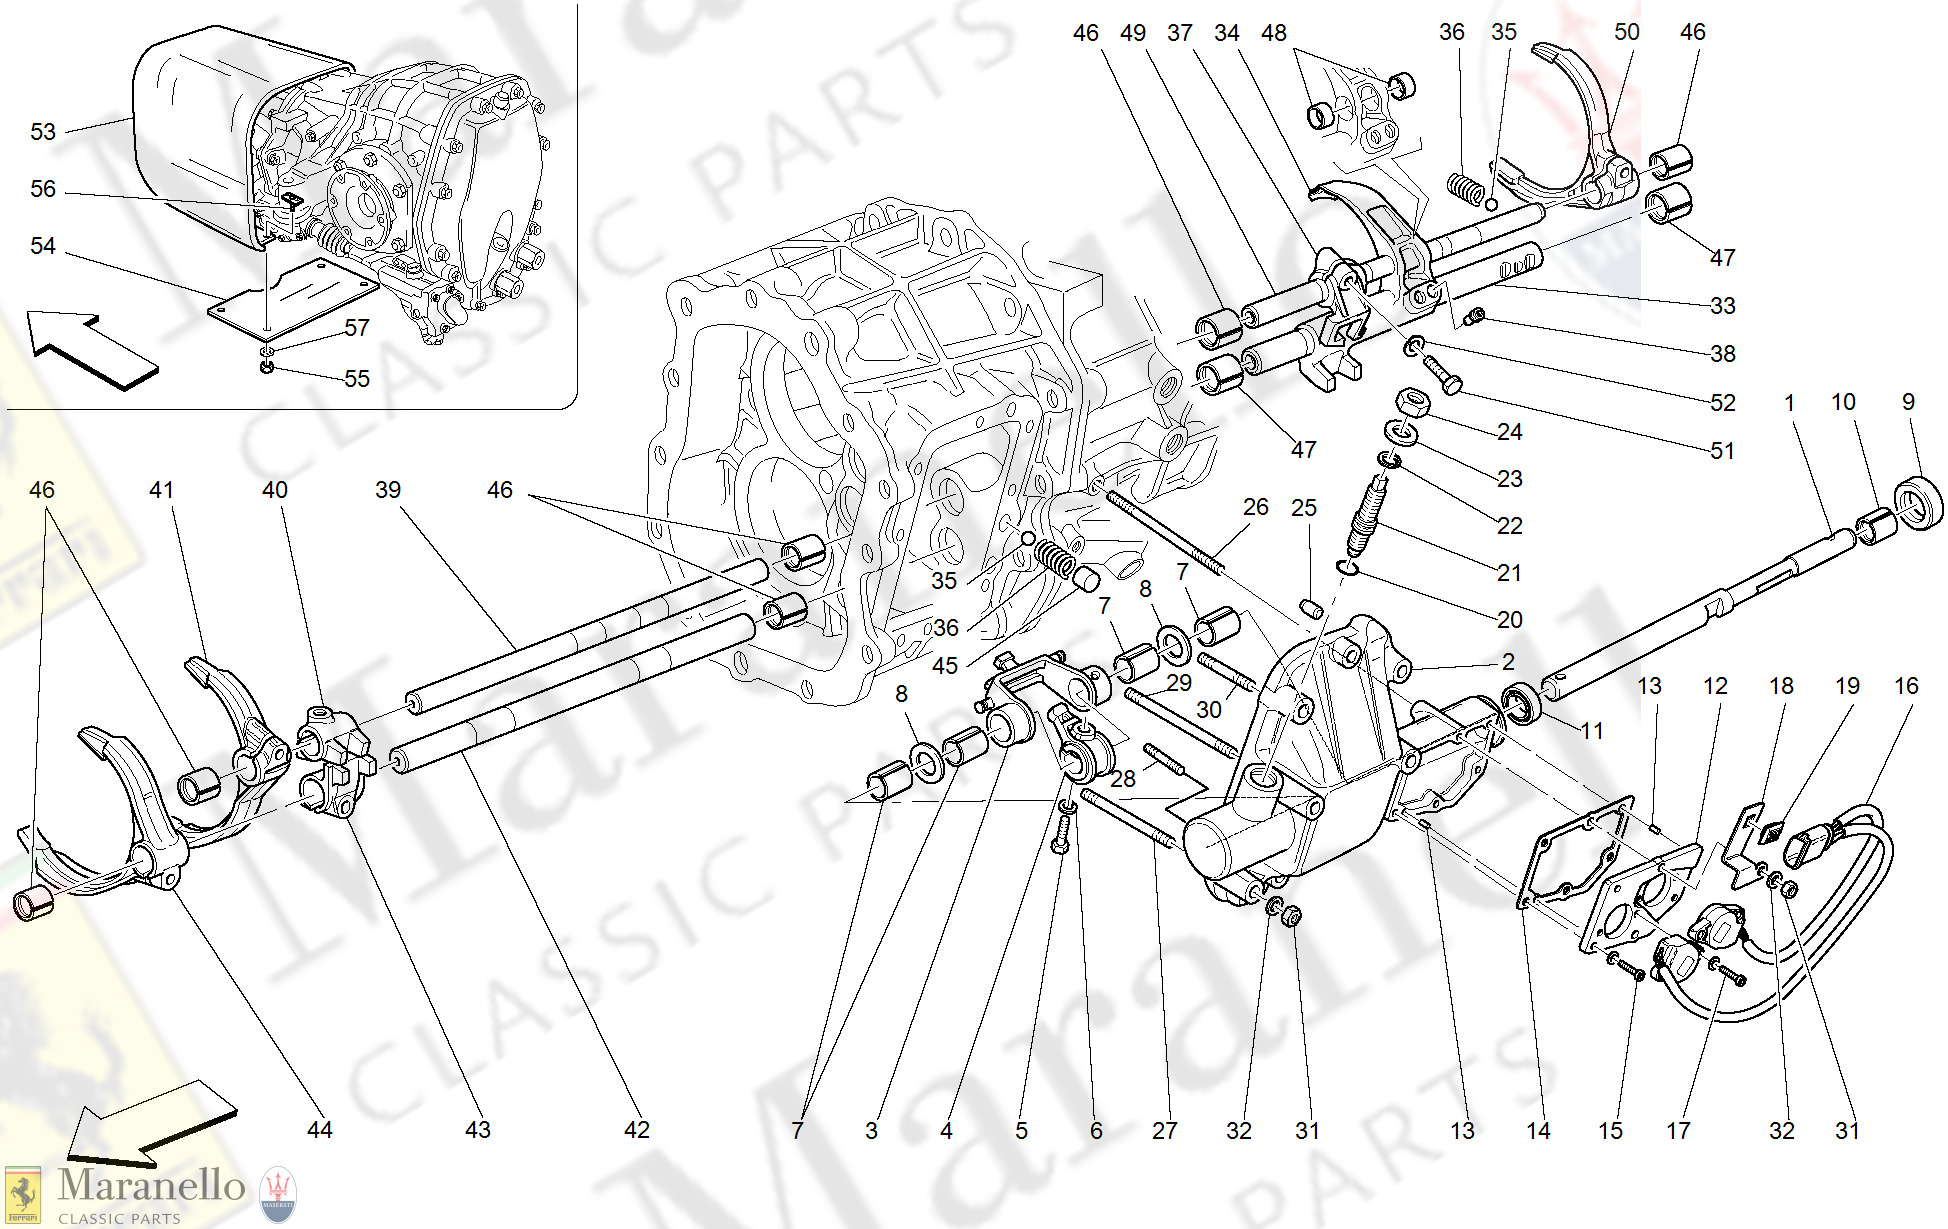 035 - Inside Gearbox Controls -Valid For F1-